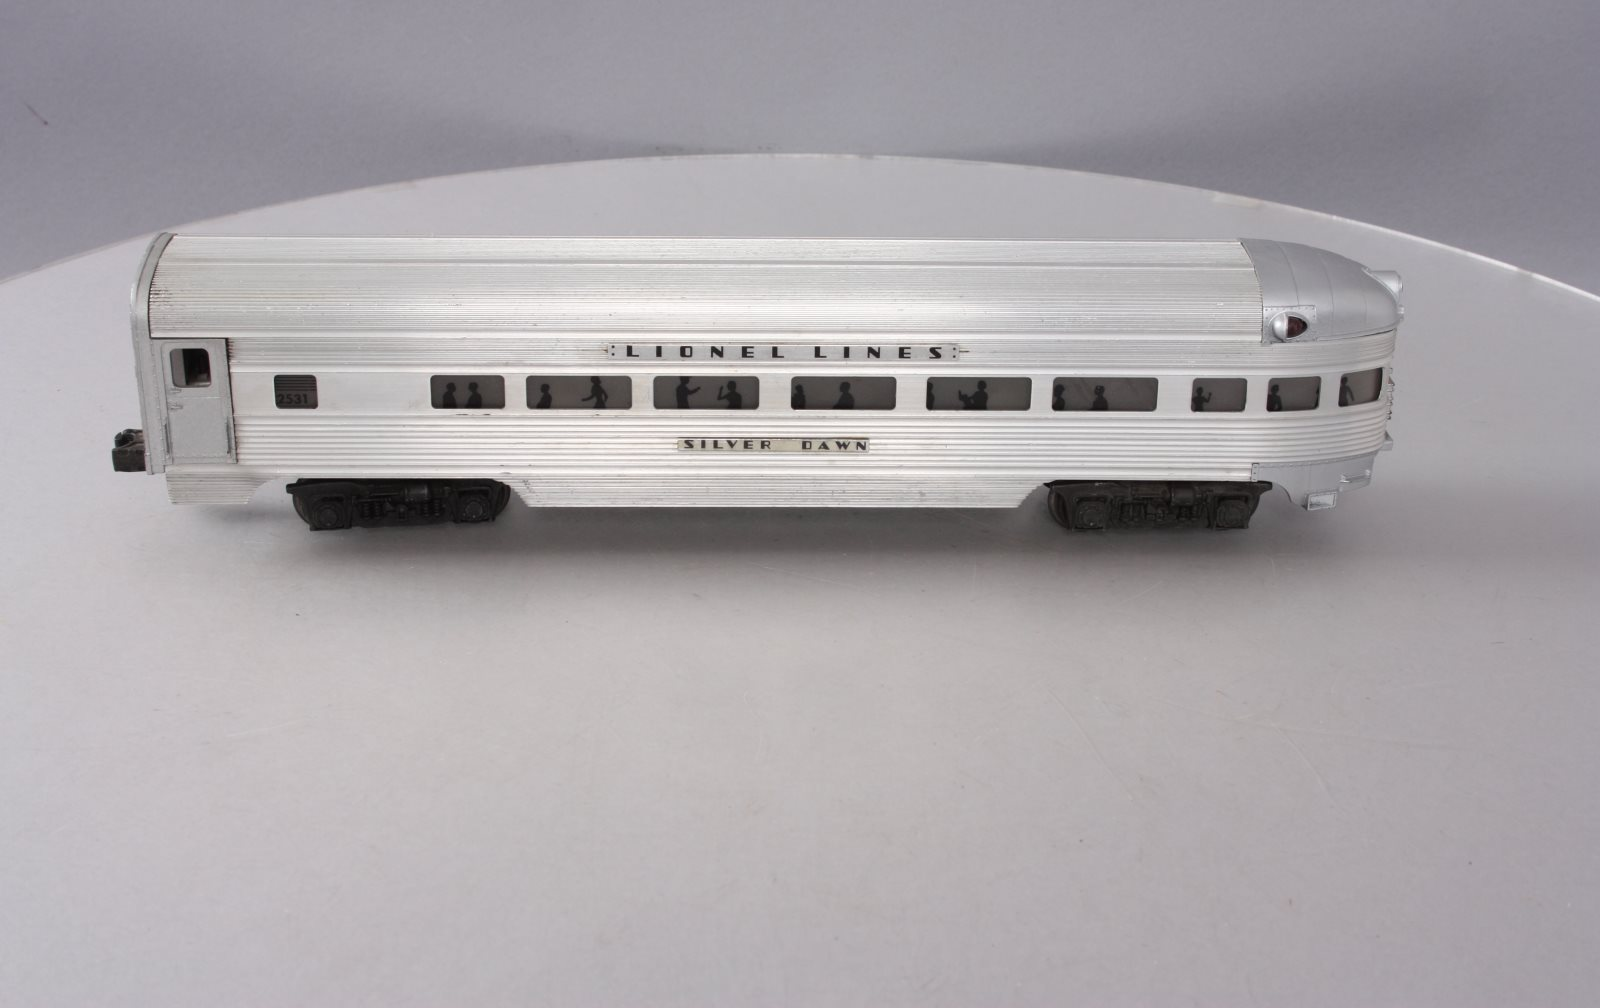 Buy Lionel 2531 Lionel Lines Silver Dawn Aluminum Observation Car